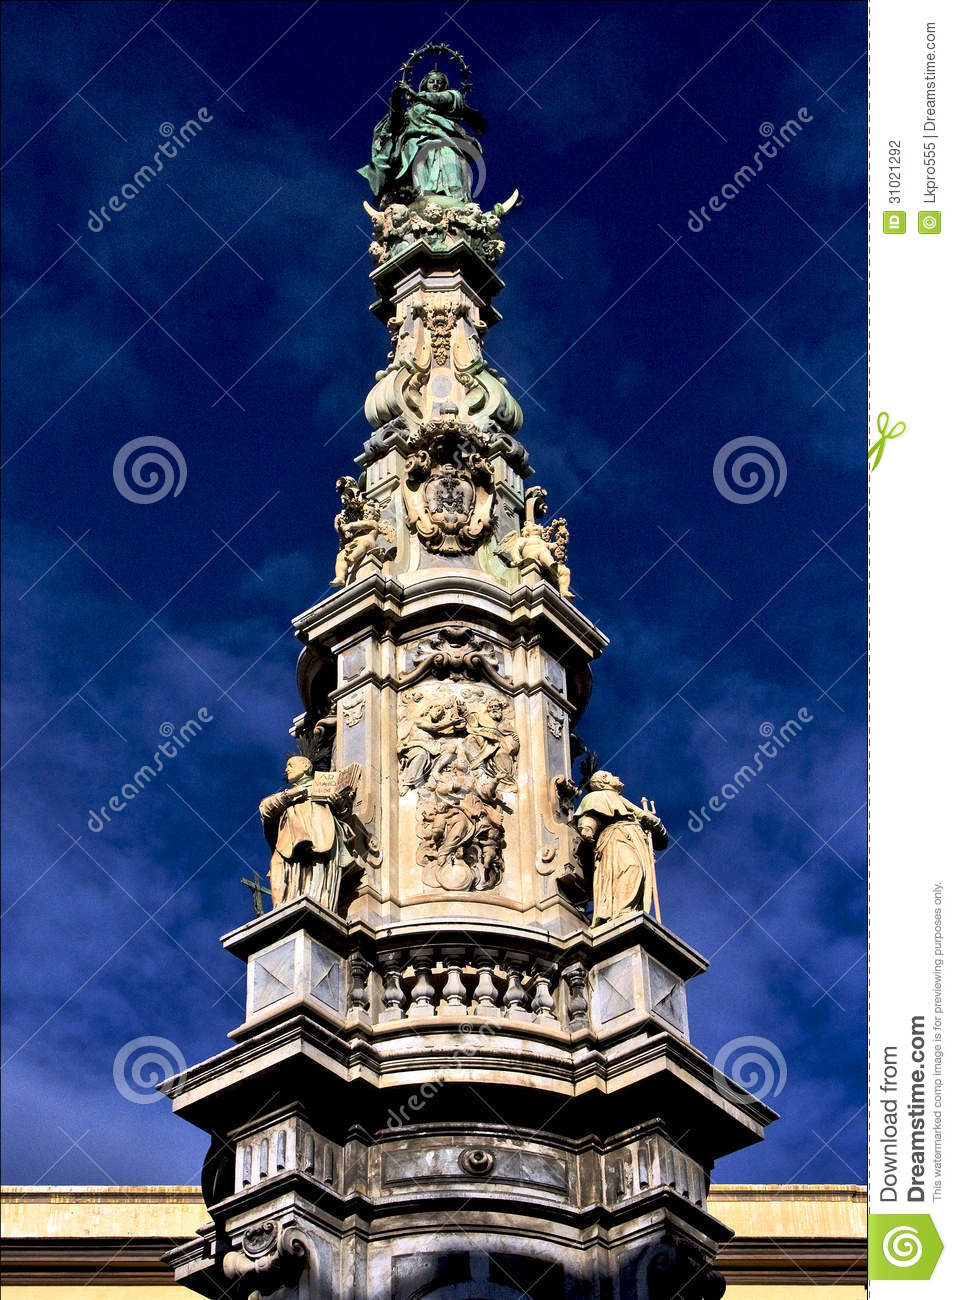 Marble Statue Of Obelisk Stock Photo Image Of Circular